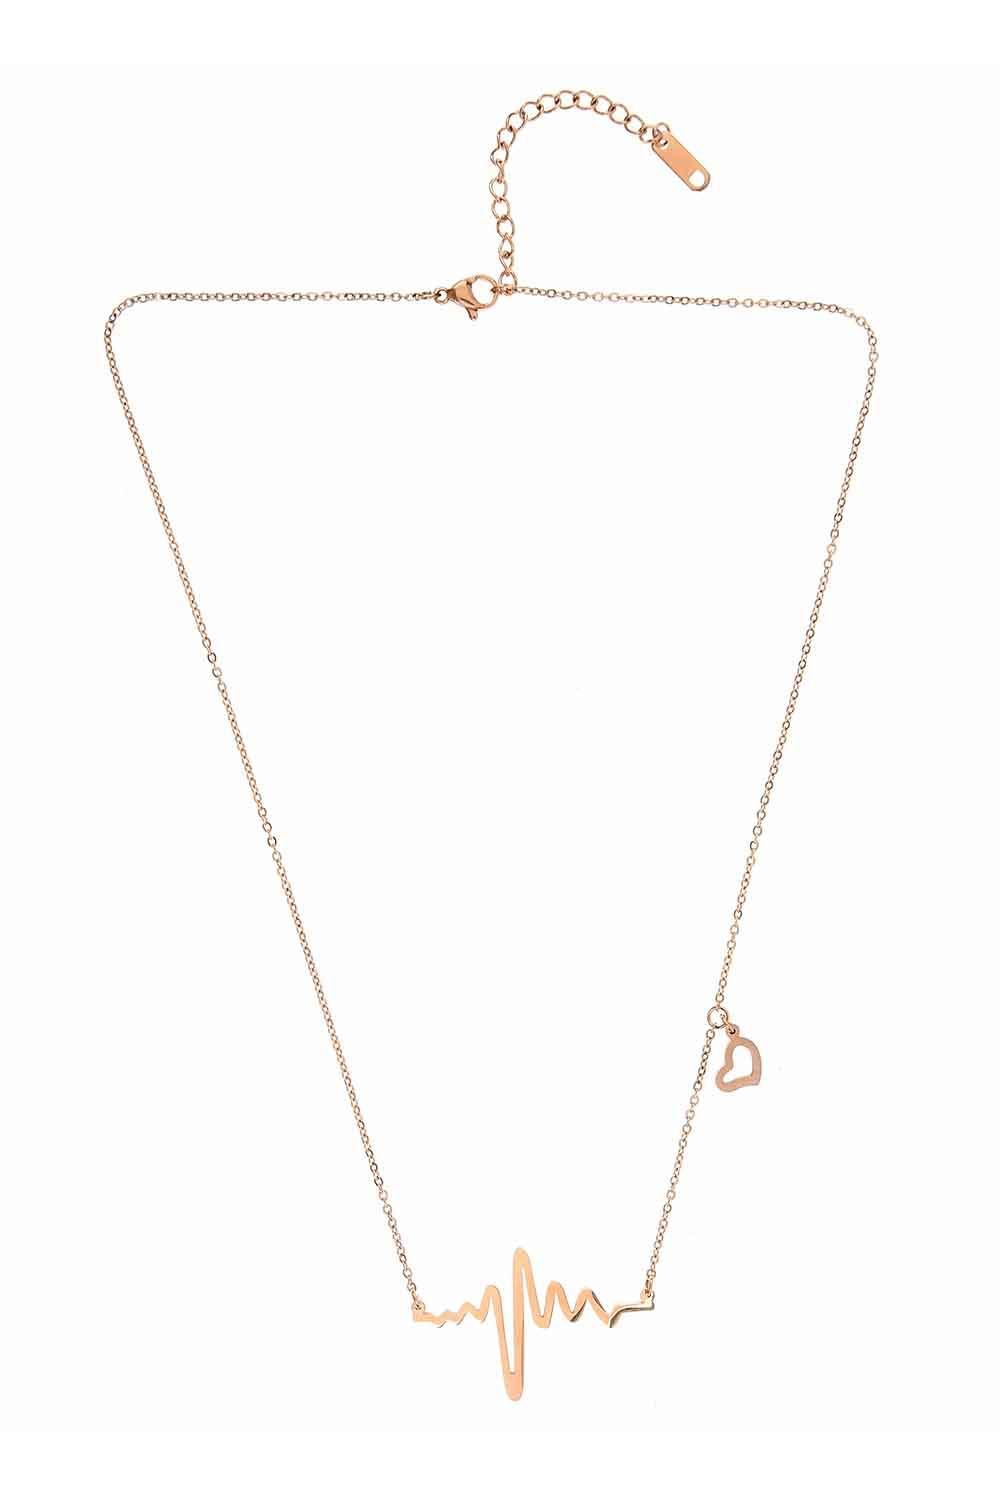 MIZALLE Rhythm Steel Necklace (St) (1)